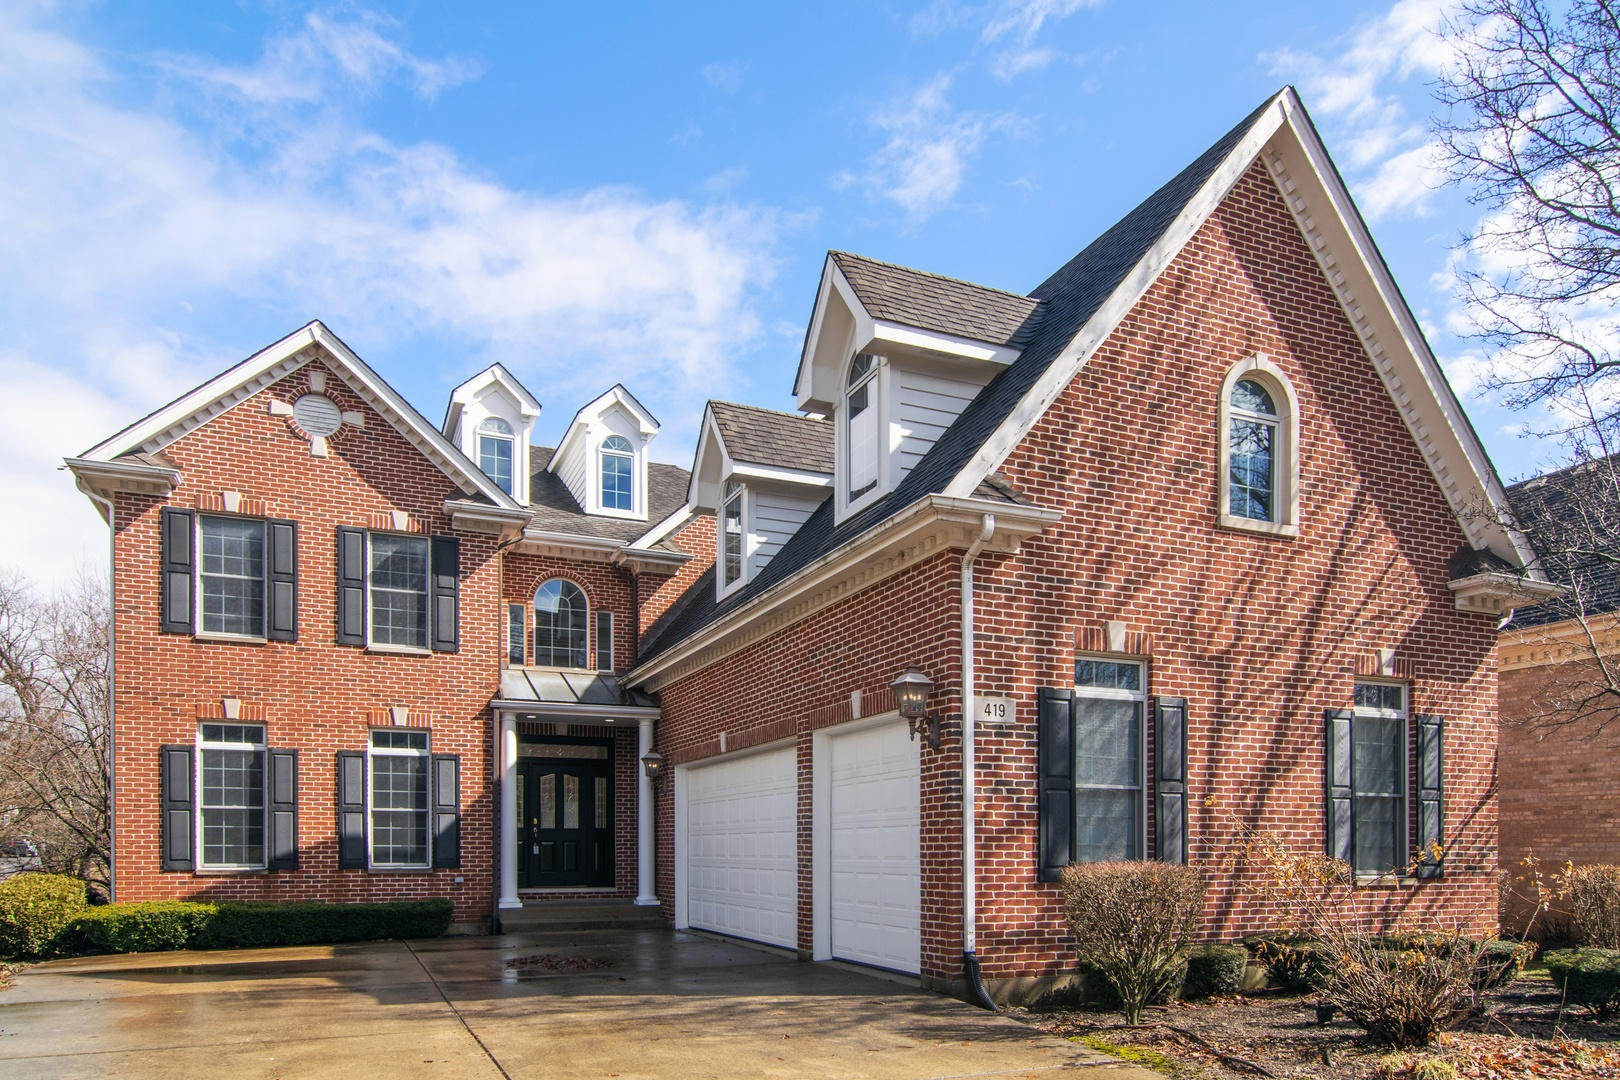 419 North Quincy Street, Hinsdale, Illinois 60521